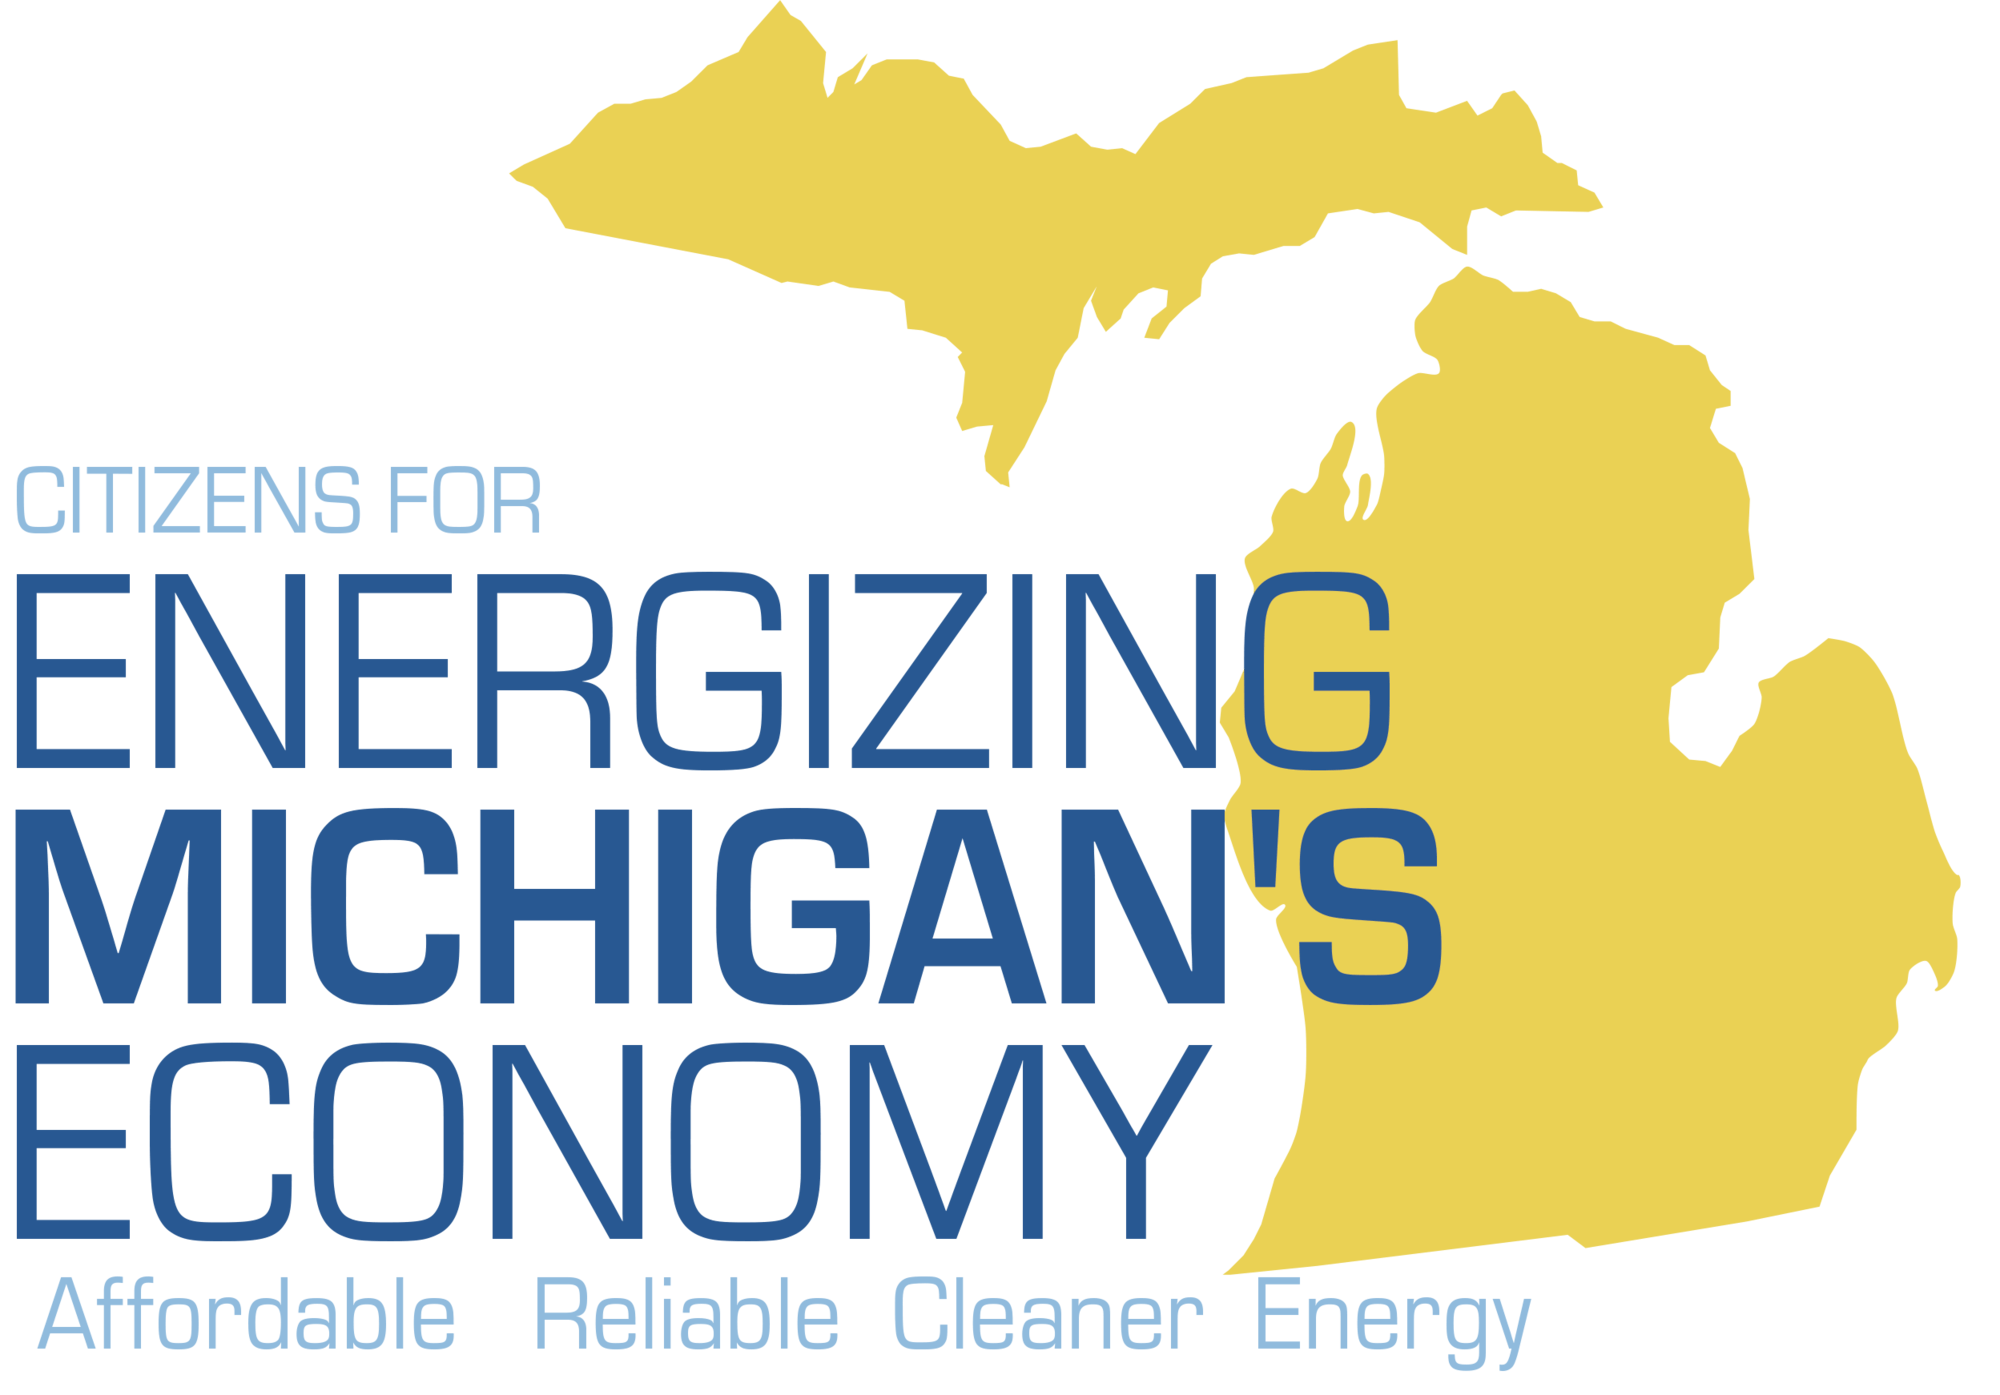 Energizing Michigan's Economy